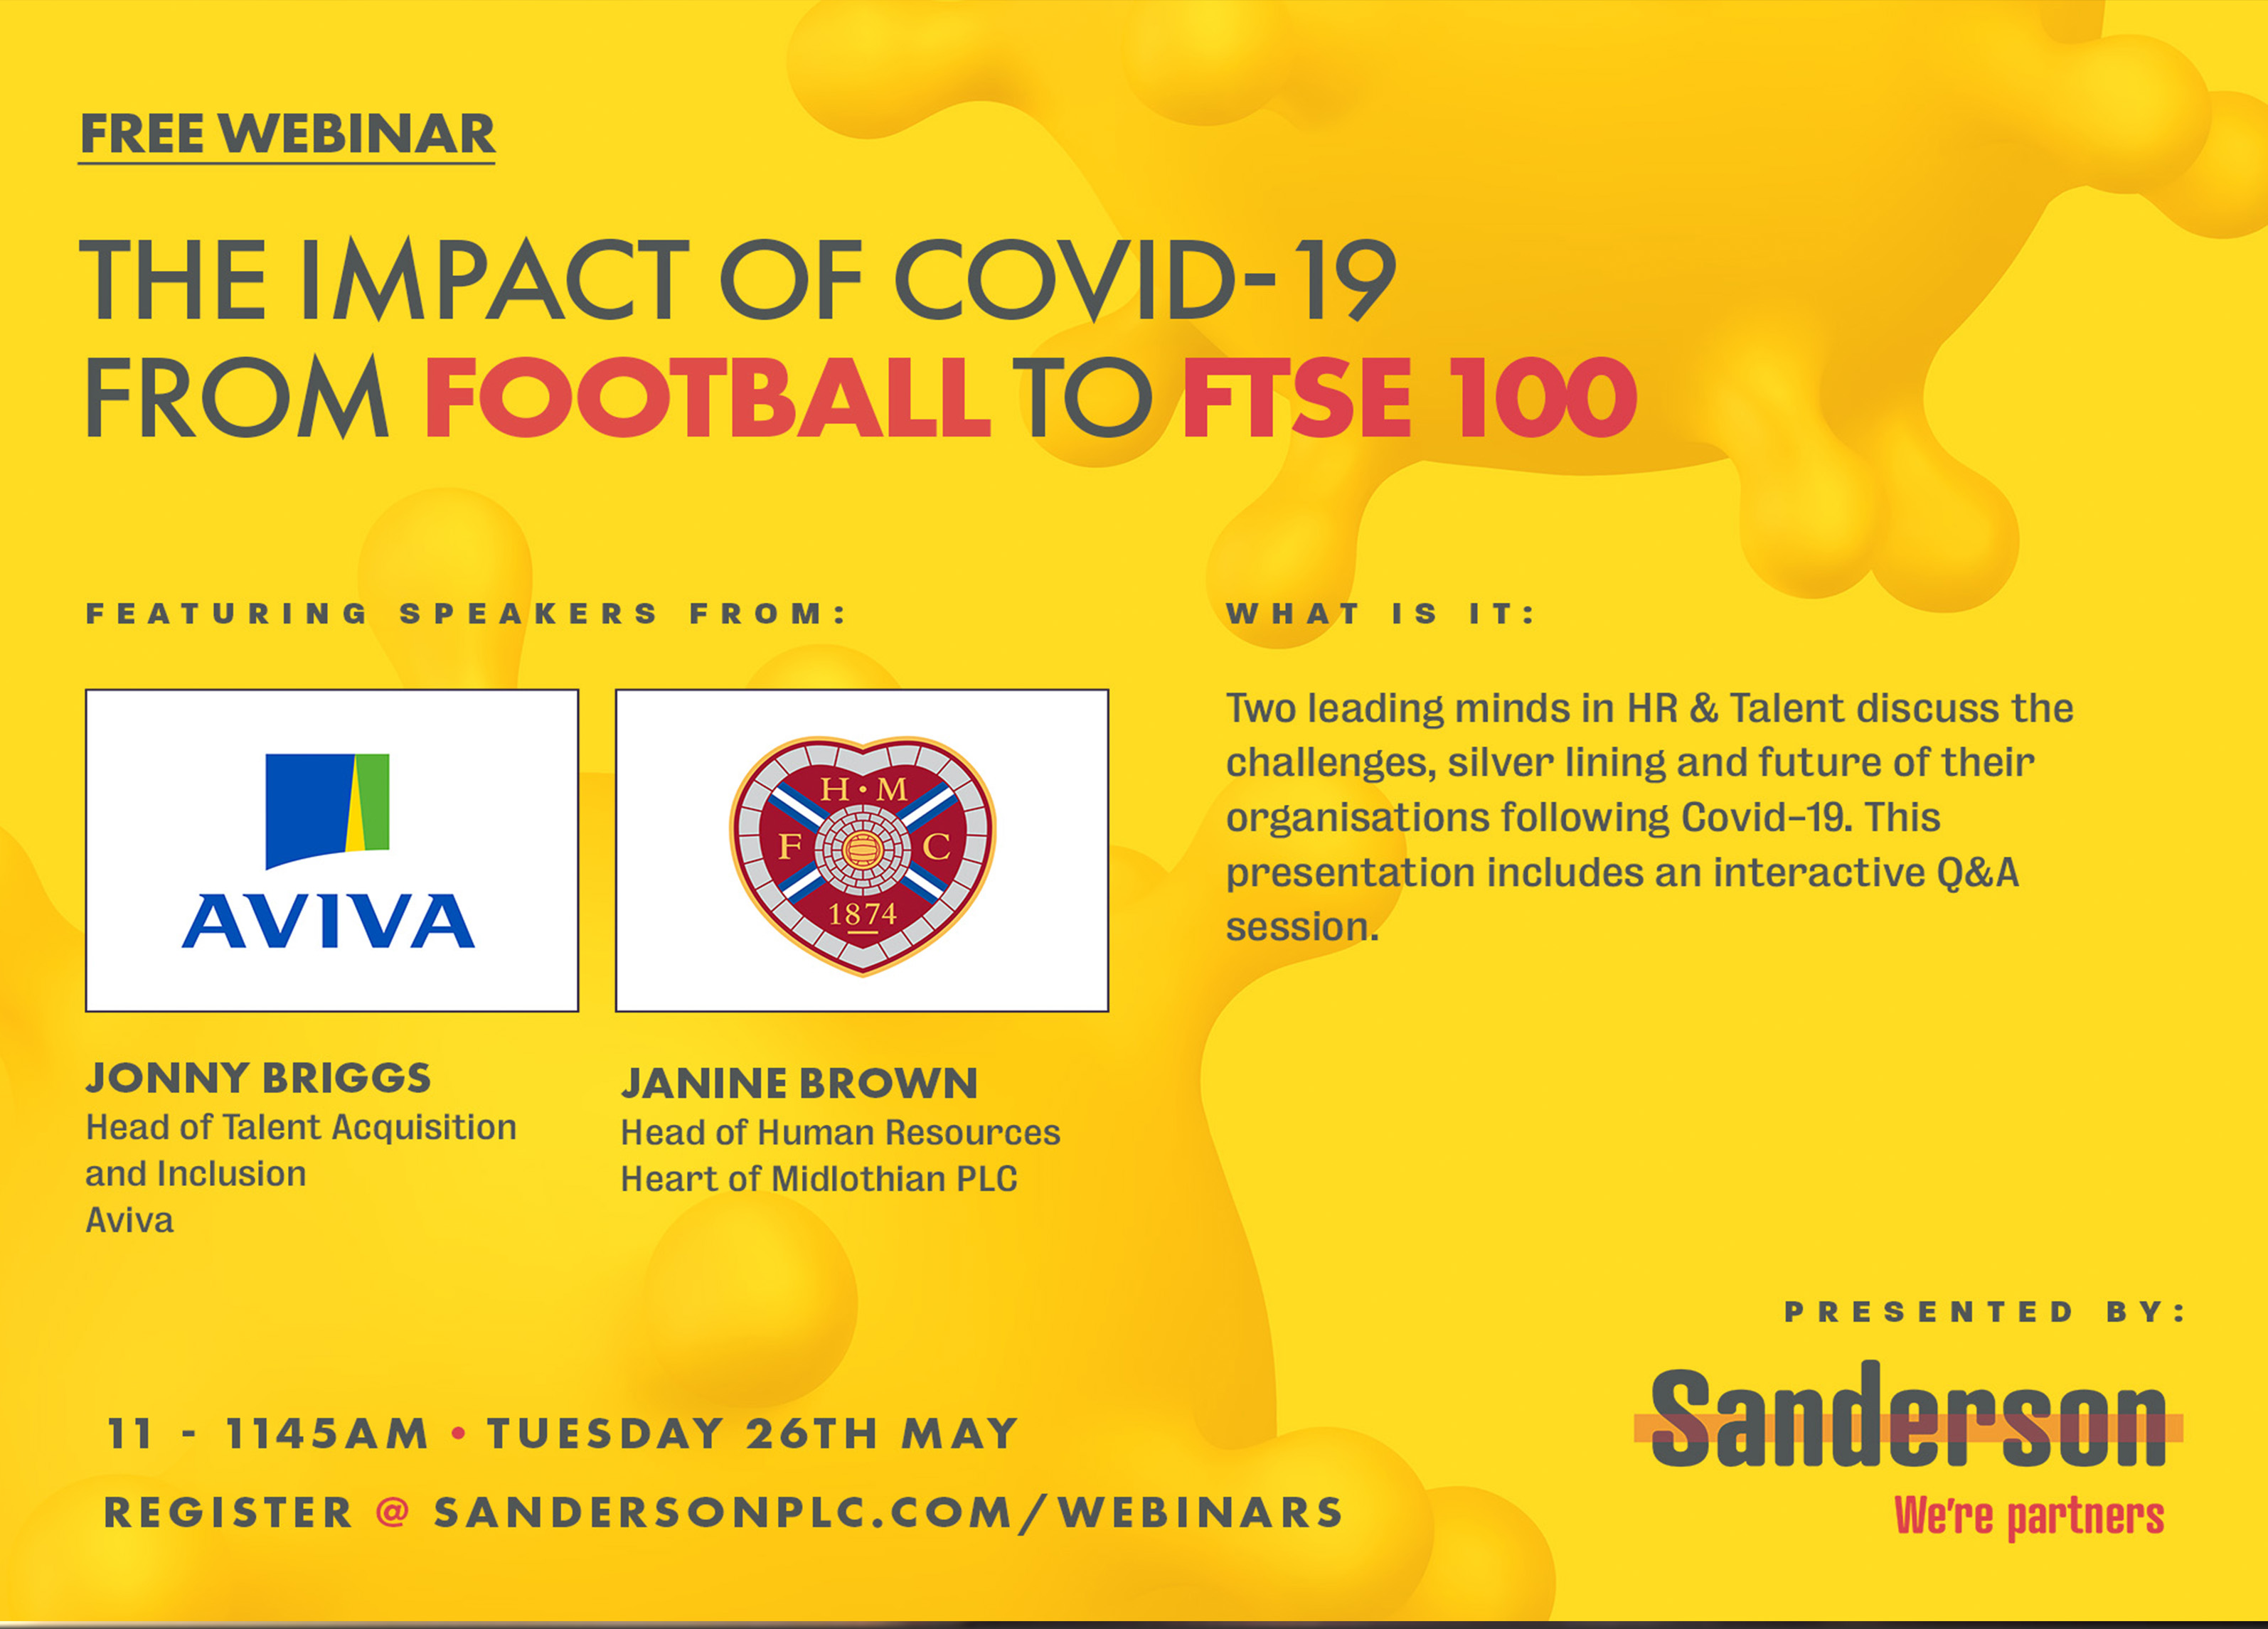 The Impact of Covid-19 from Football to FTSE 100: Webinar